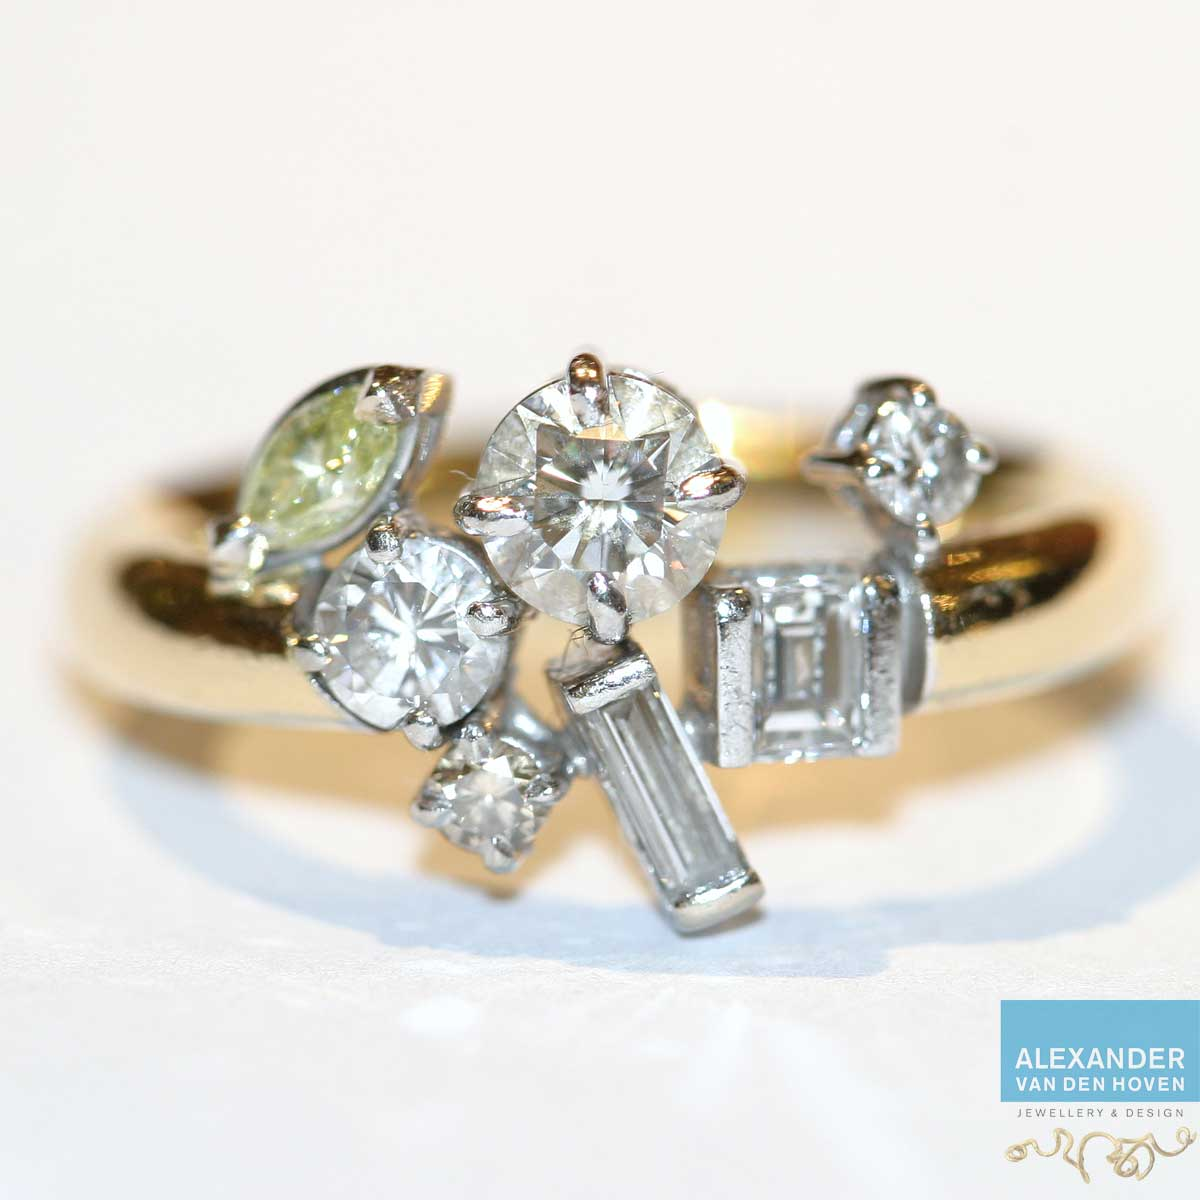 Fantasie alliance ring met verschillende diamanten